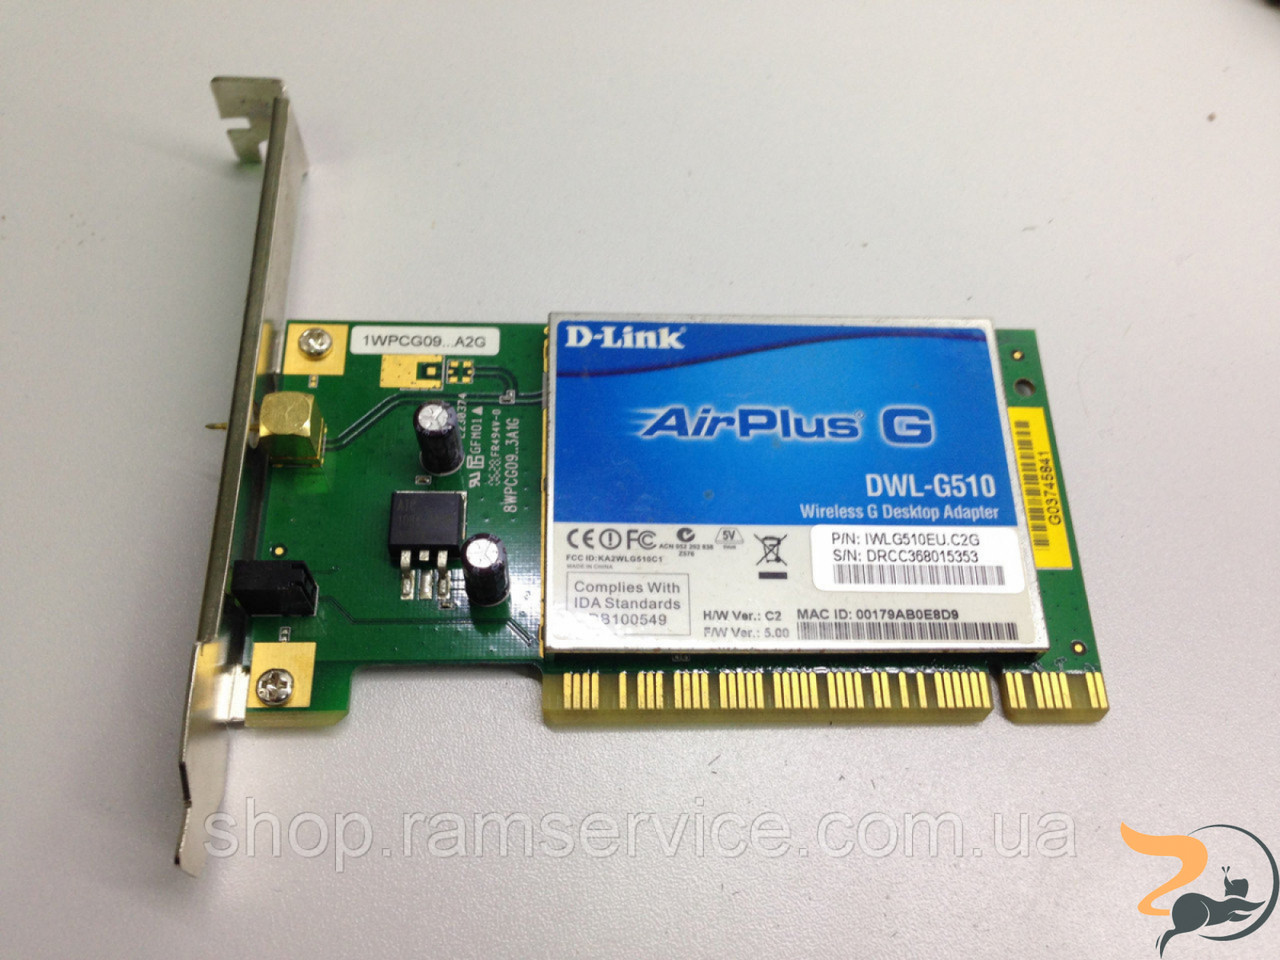 Airplus g dwl-g510 drivers d-link